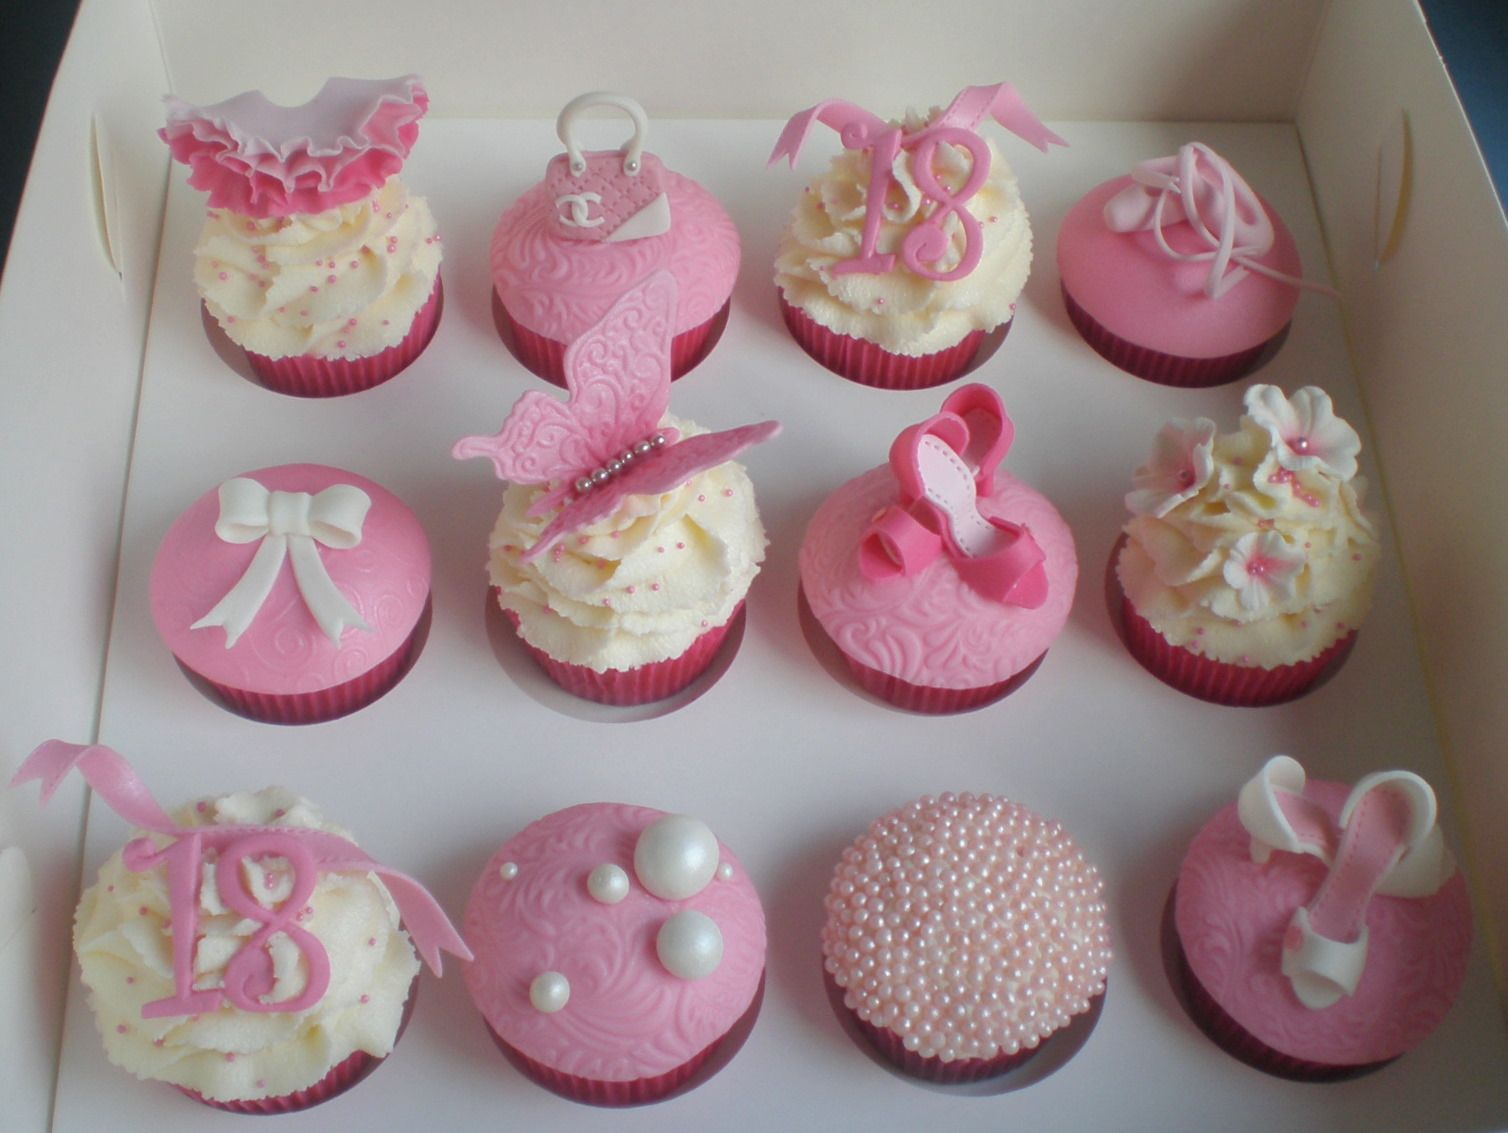 Birthday cupcake decorating ideas 18th birthday girly for 18th birthday decoration ideas for girls